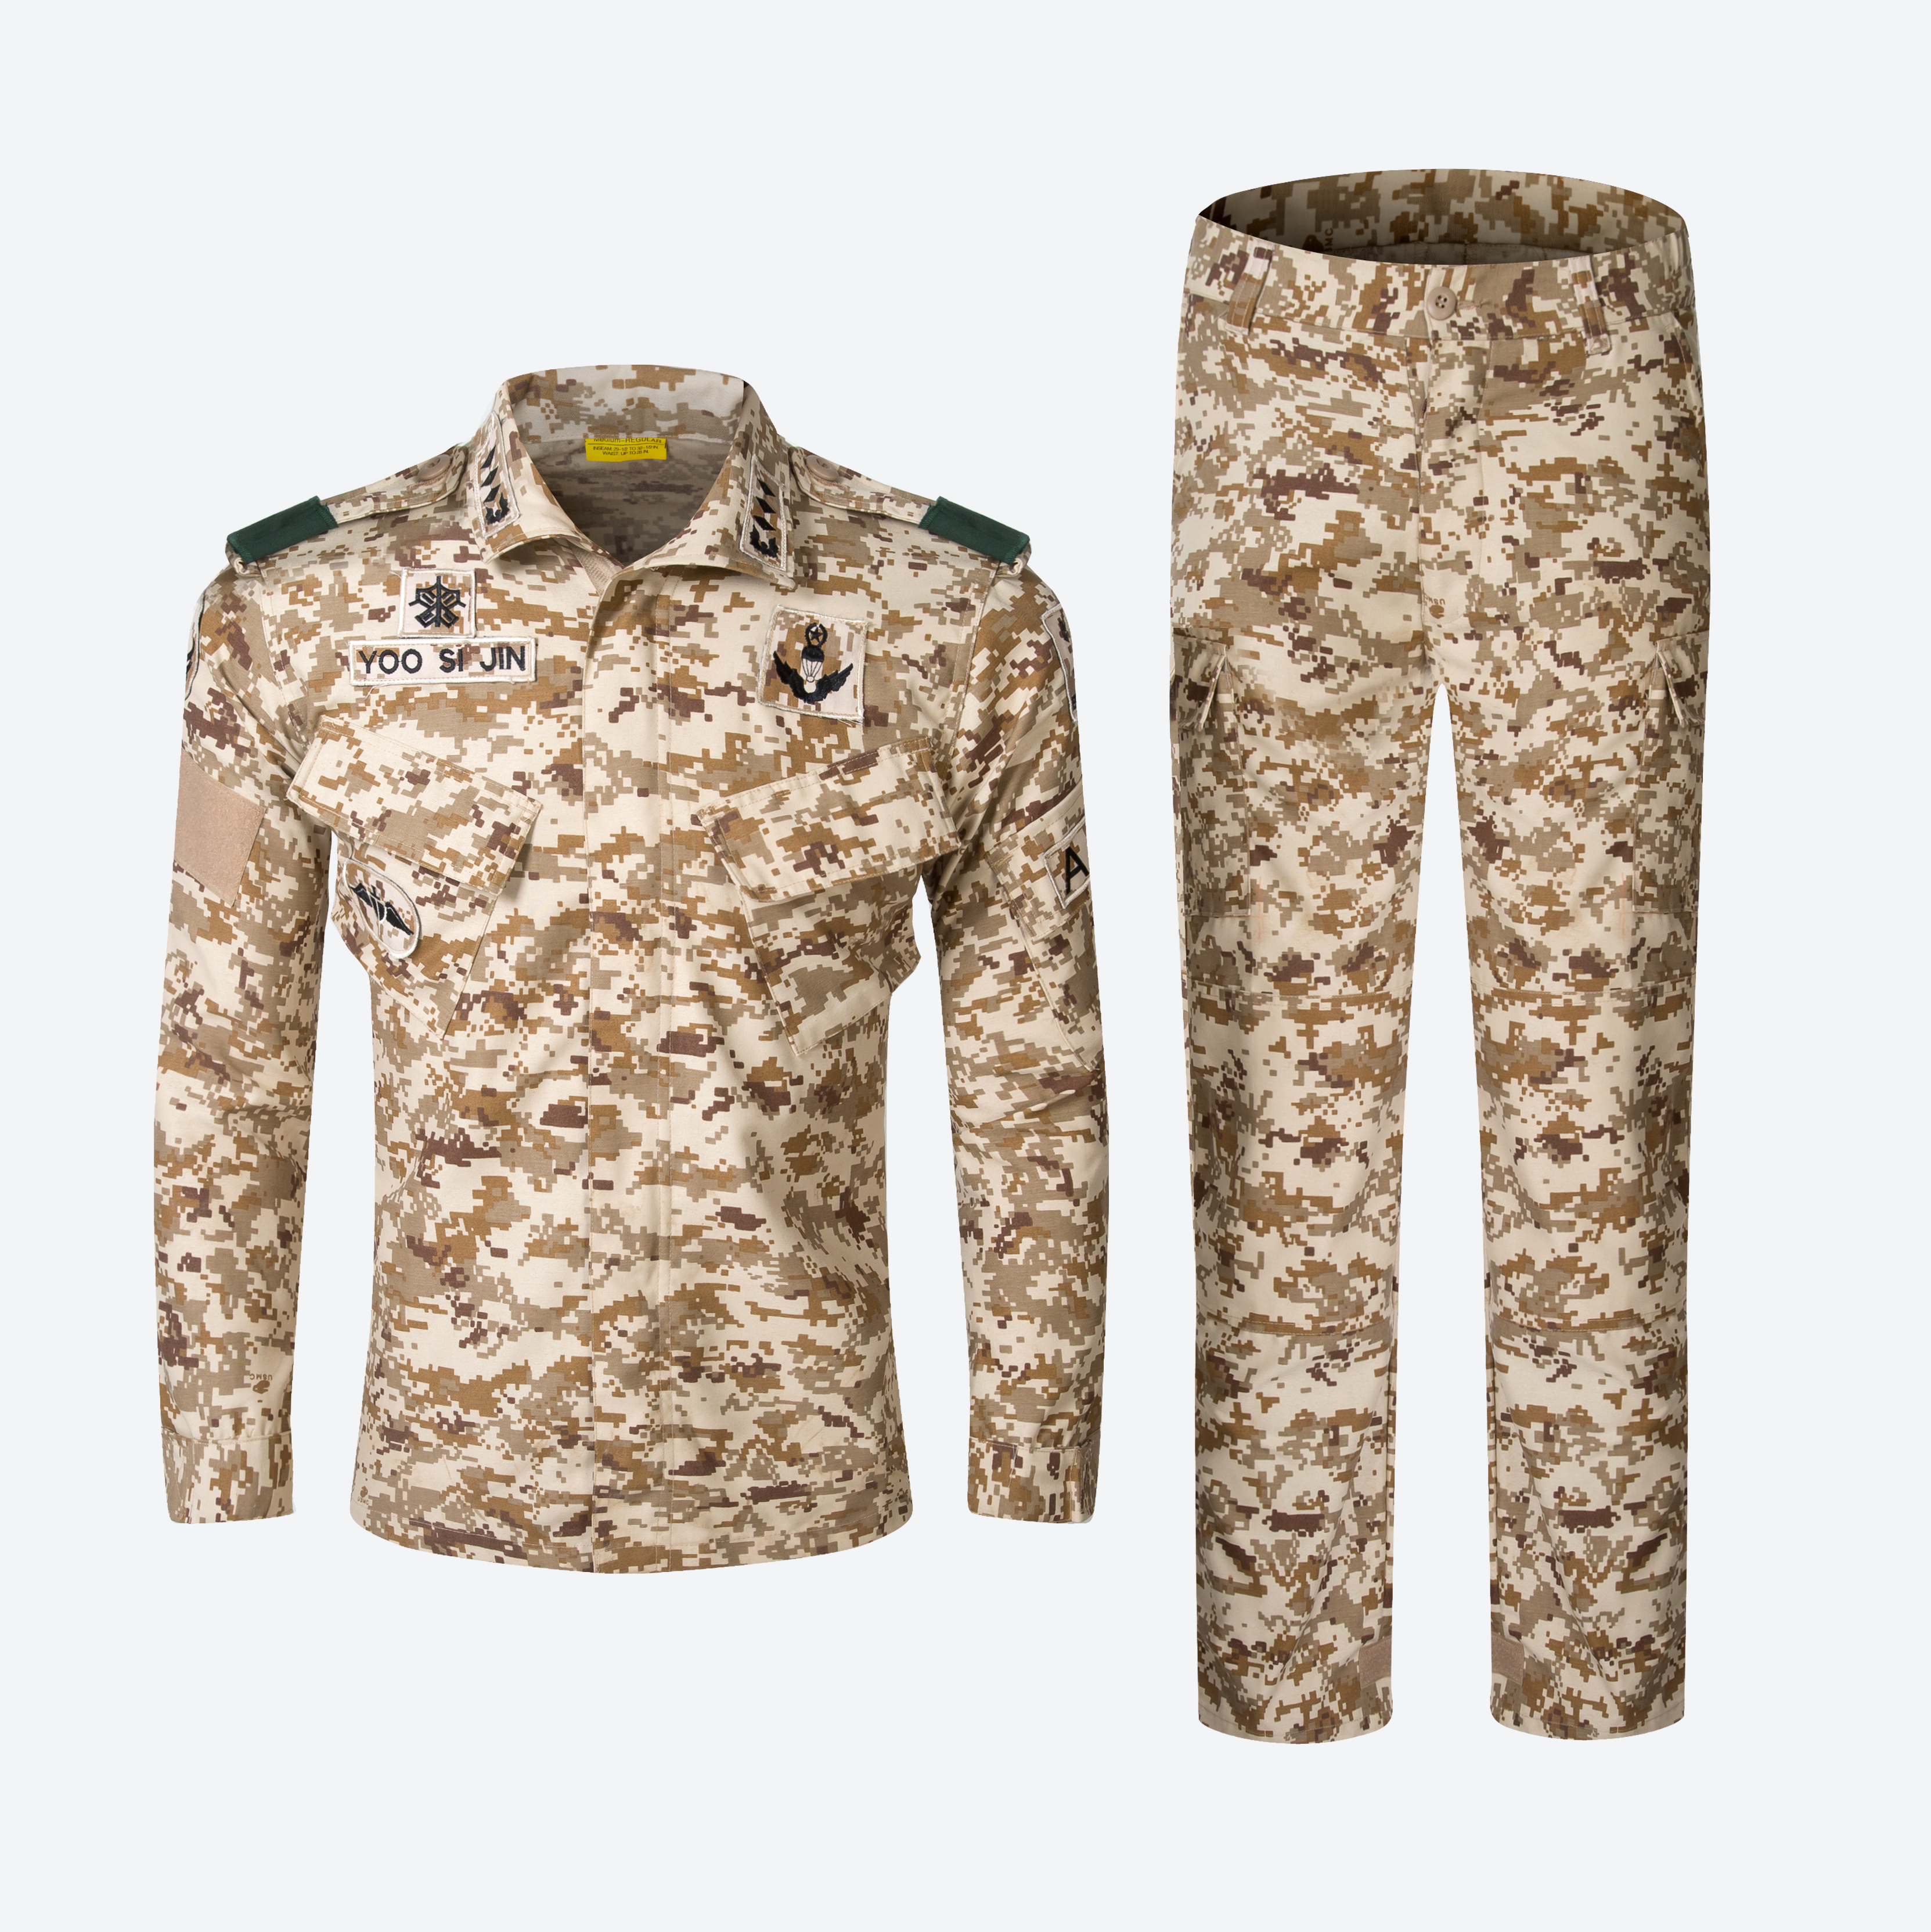 Military Camouflage Camo Desert Uniform Combat Tactical  Saudi Arabia Army Uniforms Military Army Military Clothing